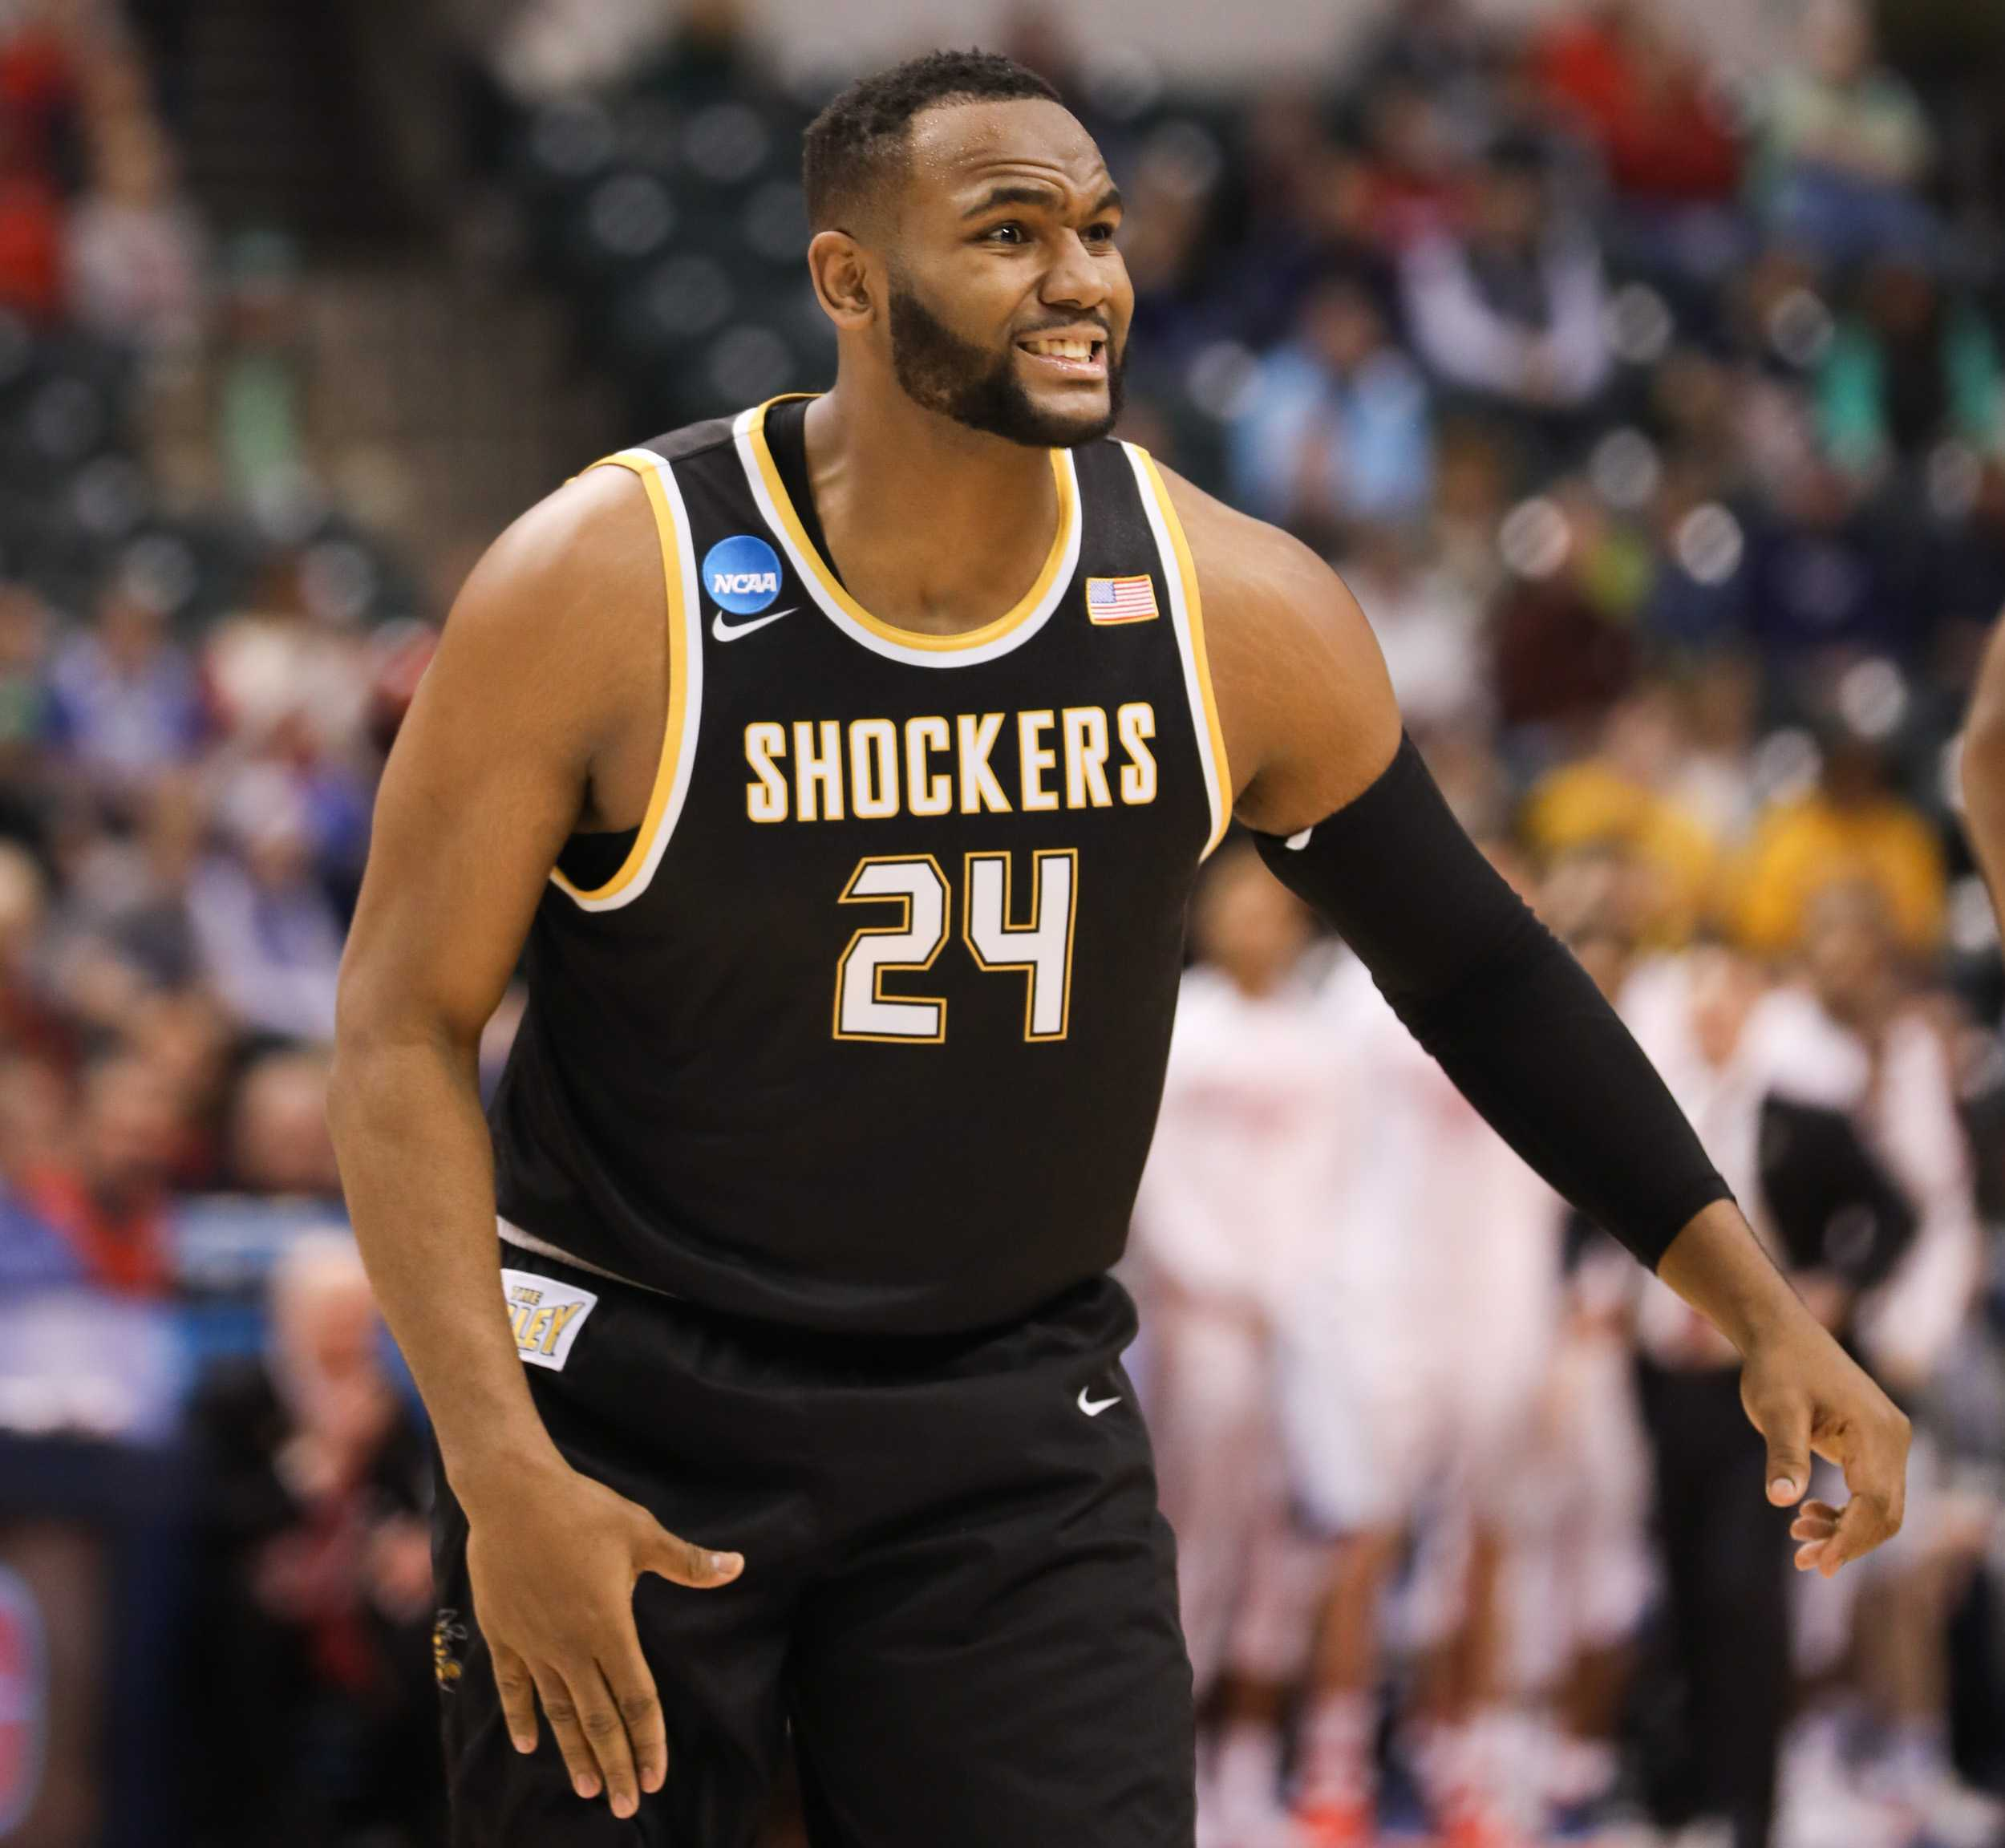 Wichita State's Shaquille Morris tries to explain how he was fouled in the first half against Dayton at Bankers Life Fieldhouse in Indianapolis. (Mar. 17, 17, 2017)